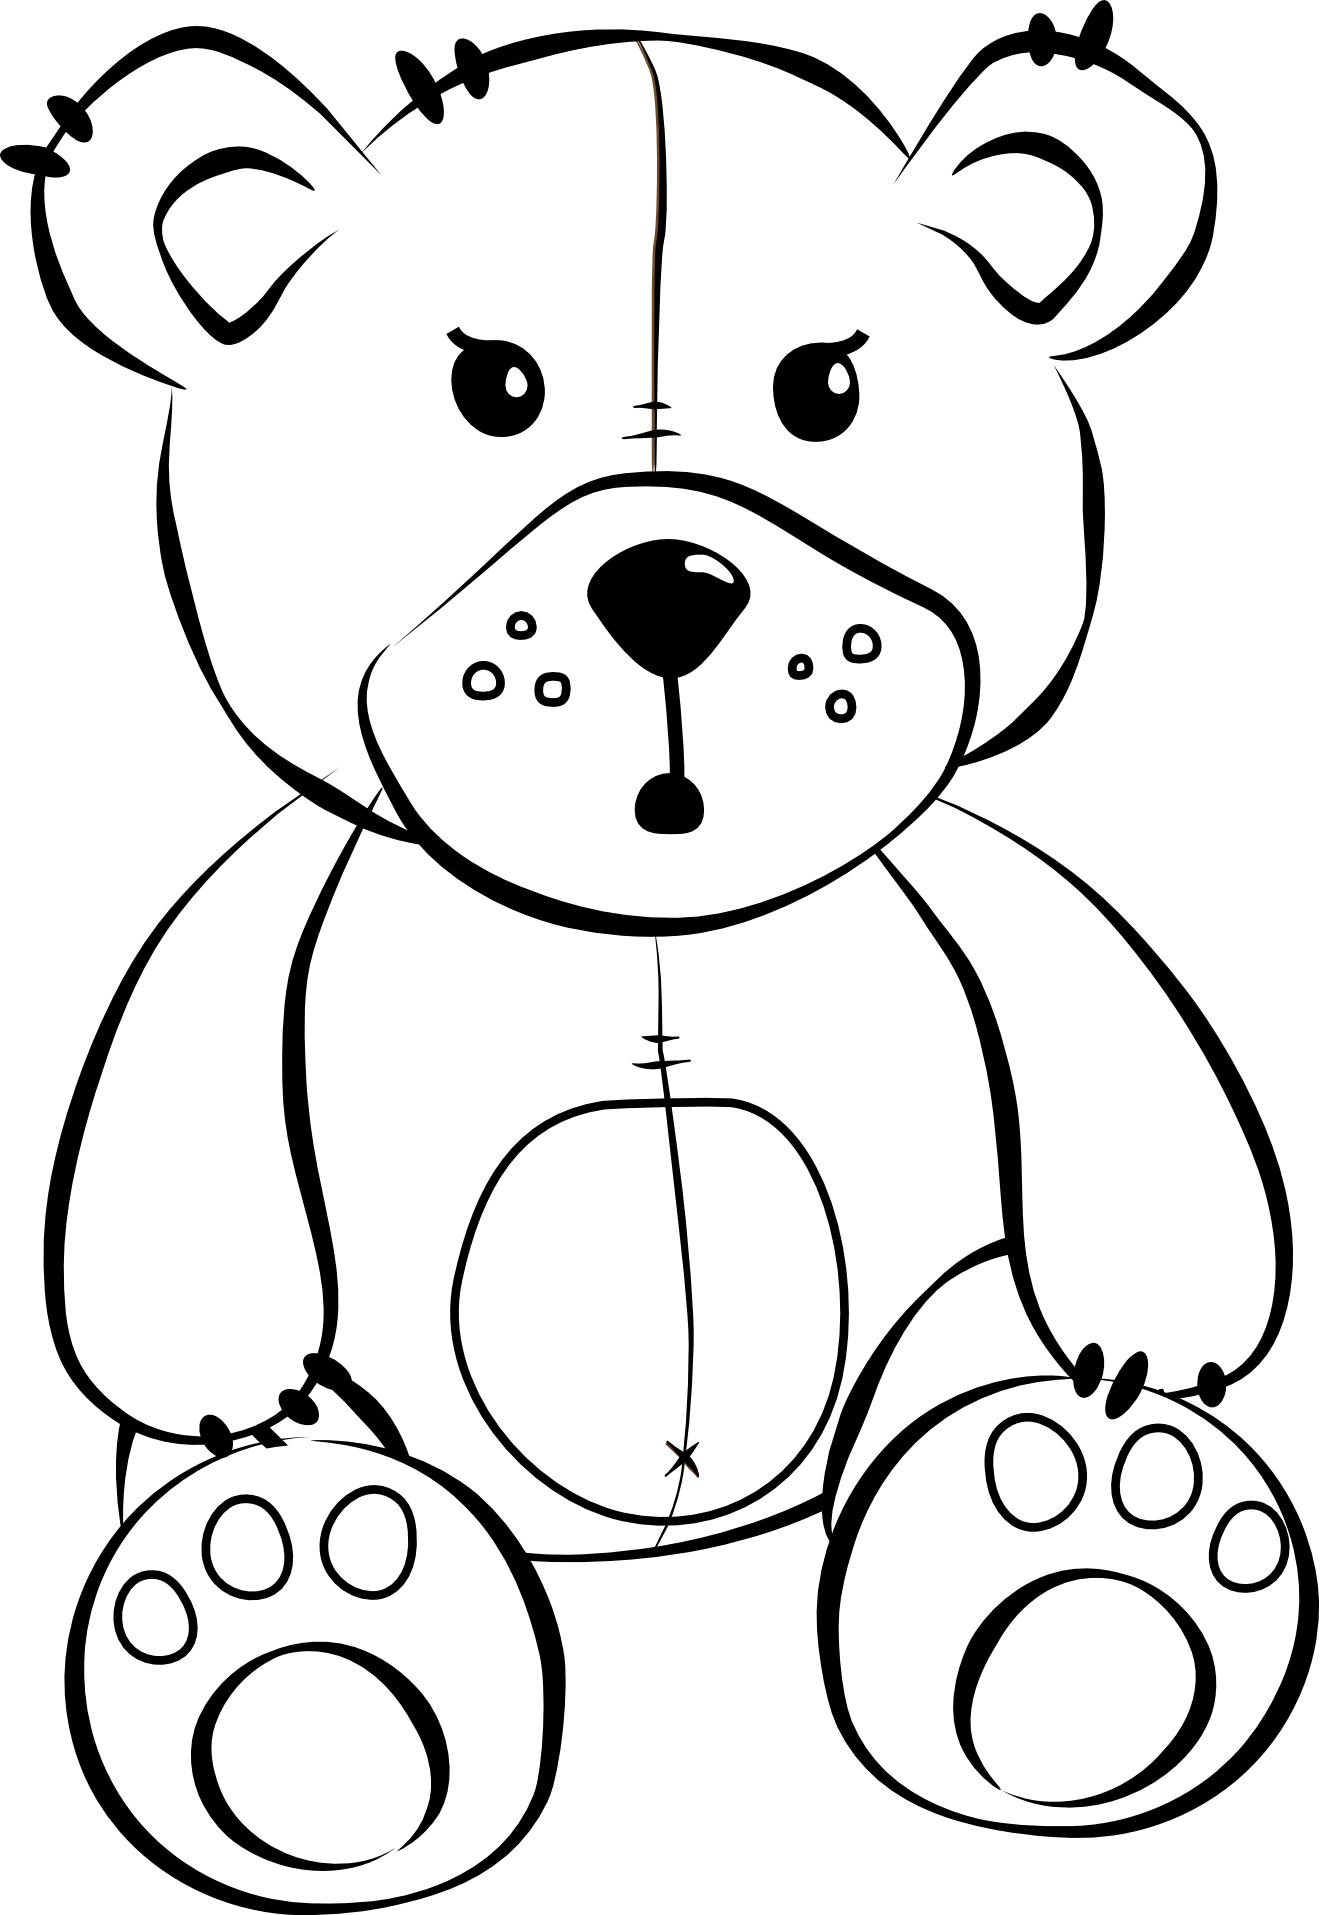 bear line drawing royalty free roaring bear clip art vector images bear drawing line